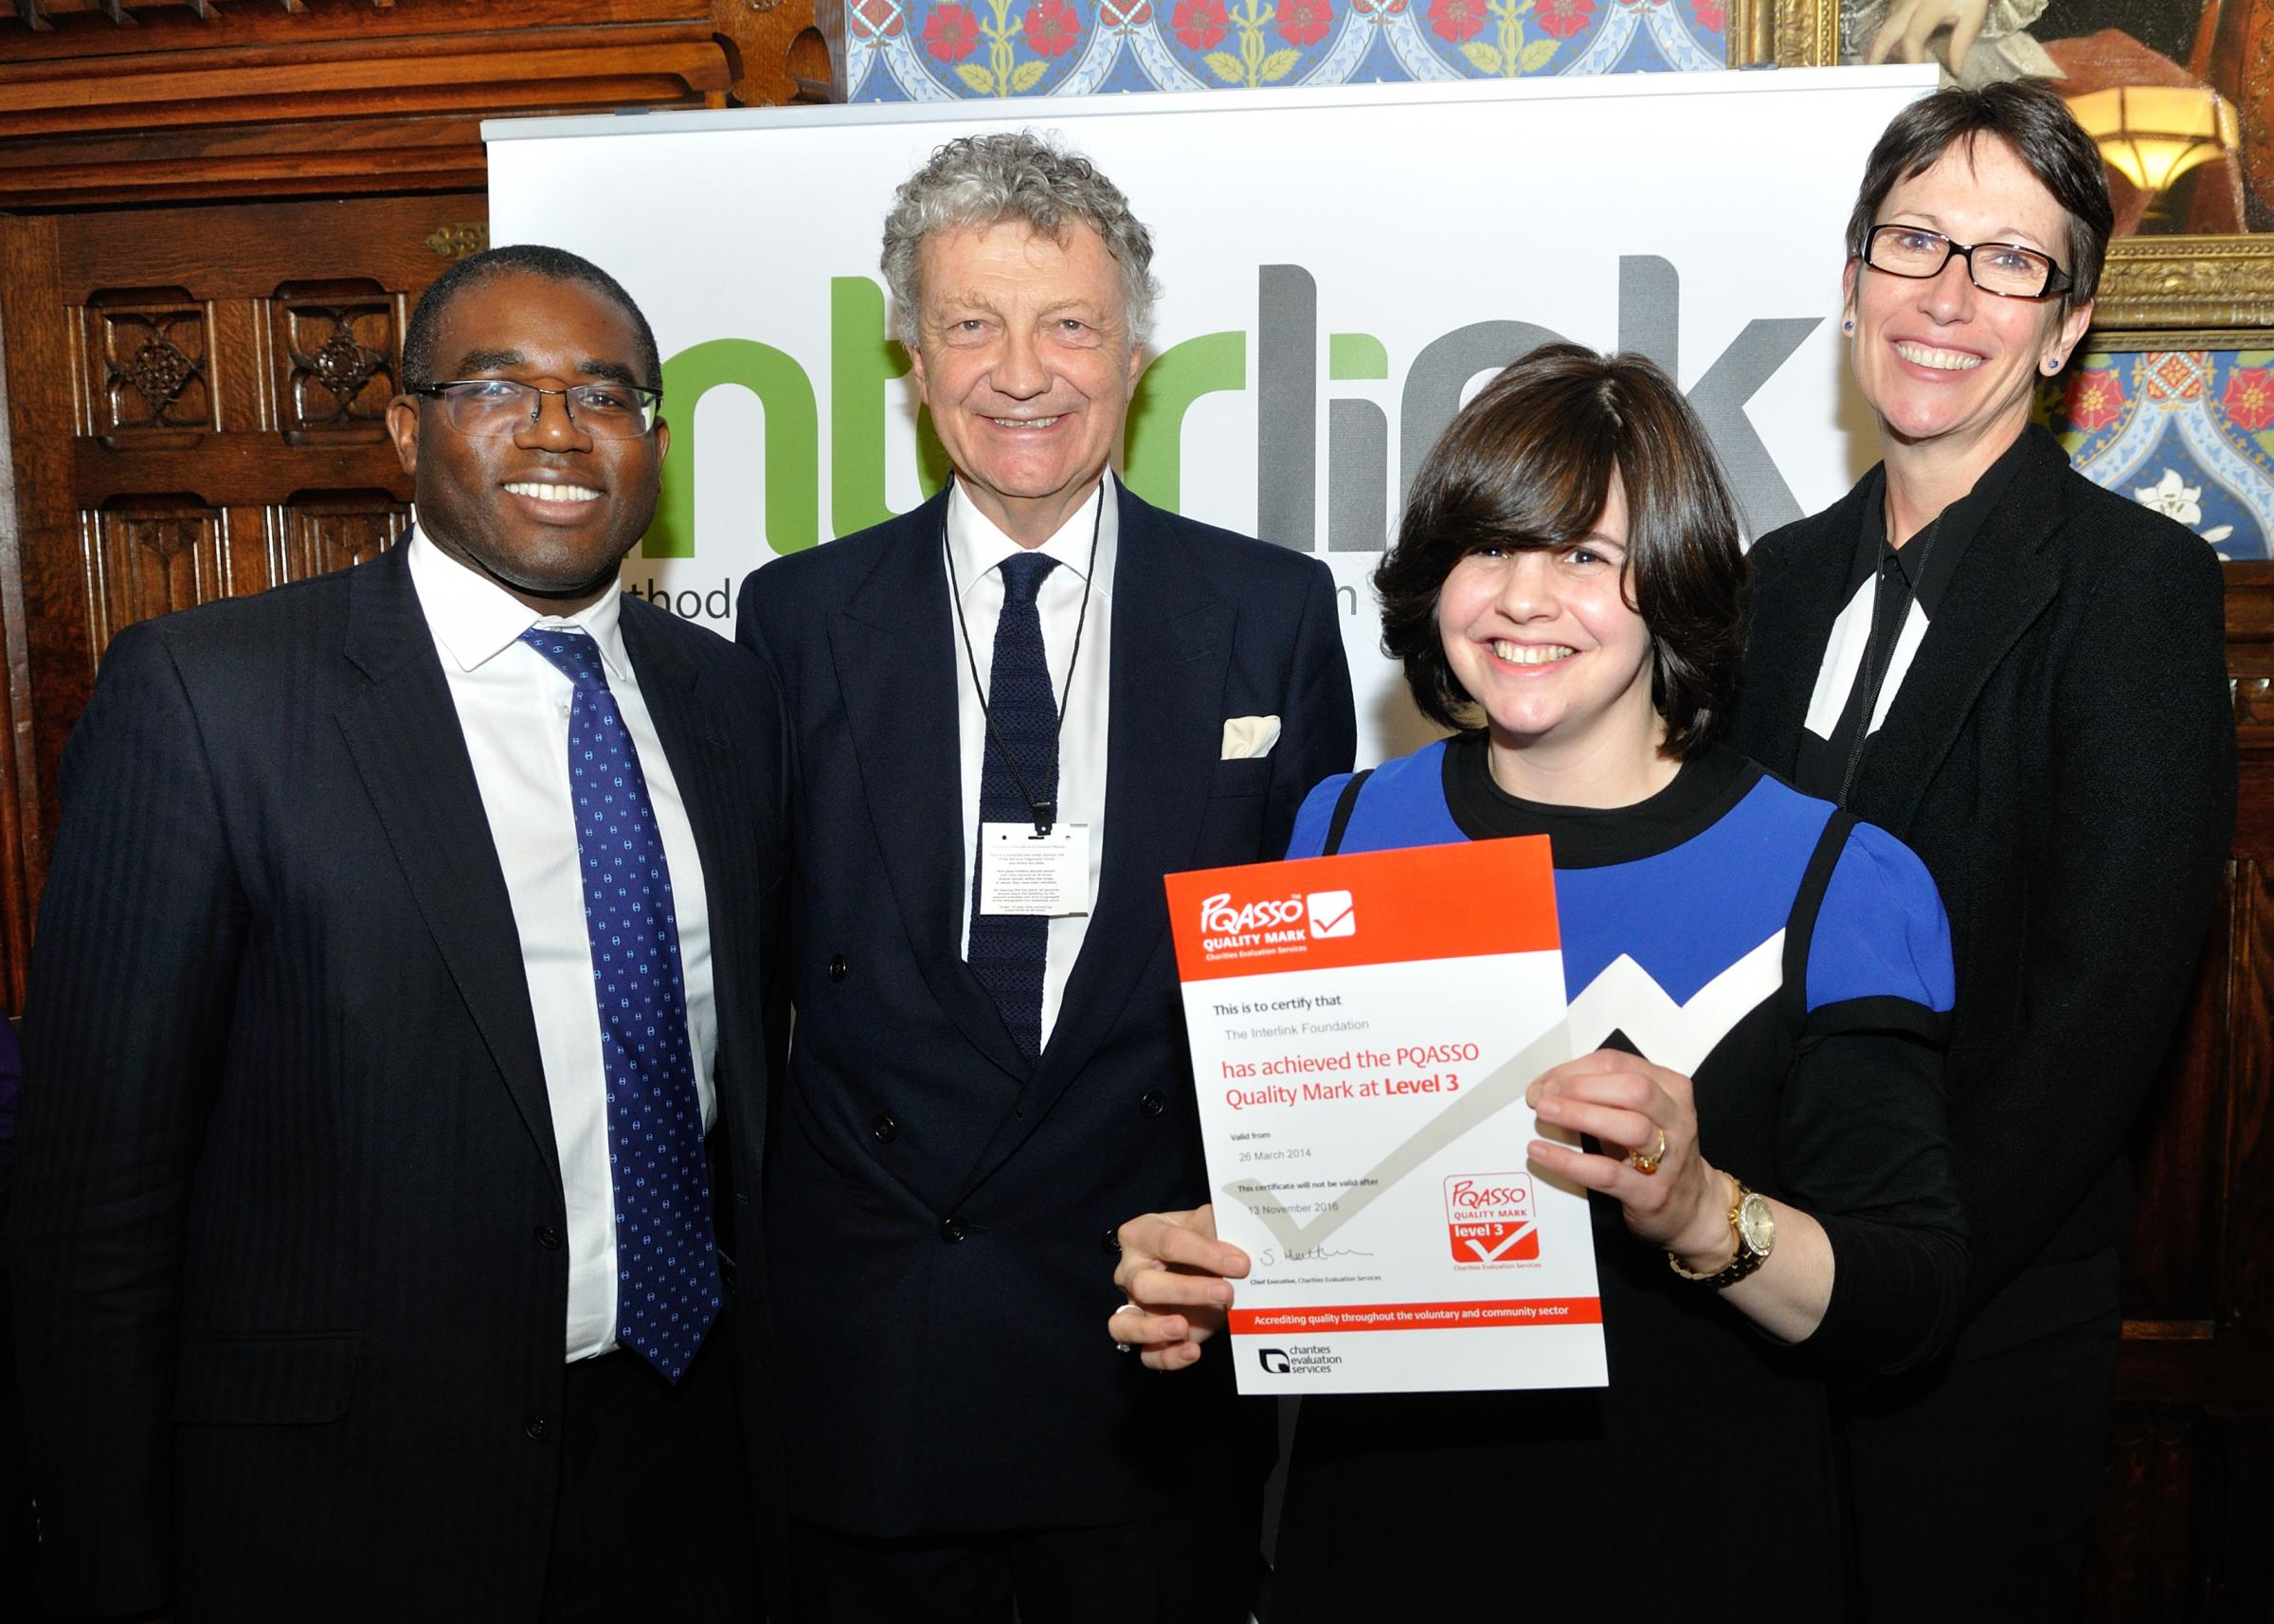 David Lammy MP, William Shawcross, Chaya Spitz and Samantha Matthews attended a parliamentary reception to honour the work of the Jewish charity the Interlink Foundation